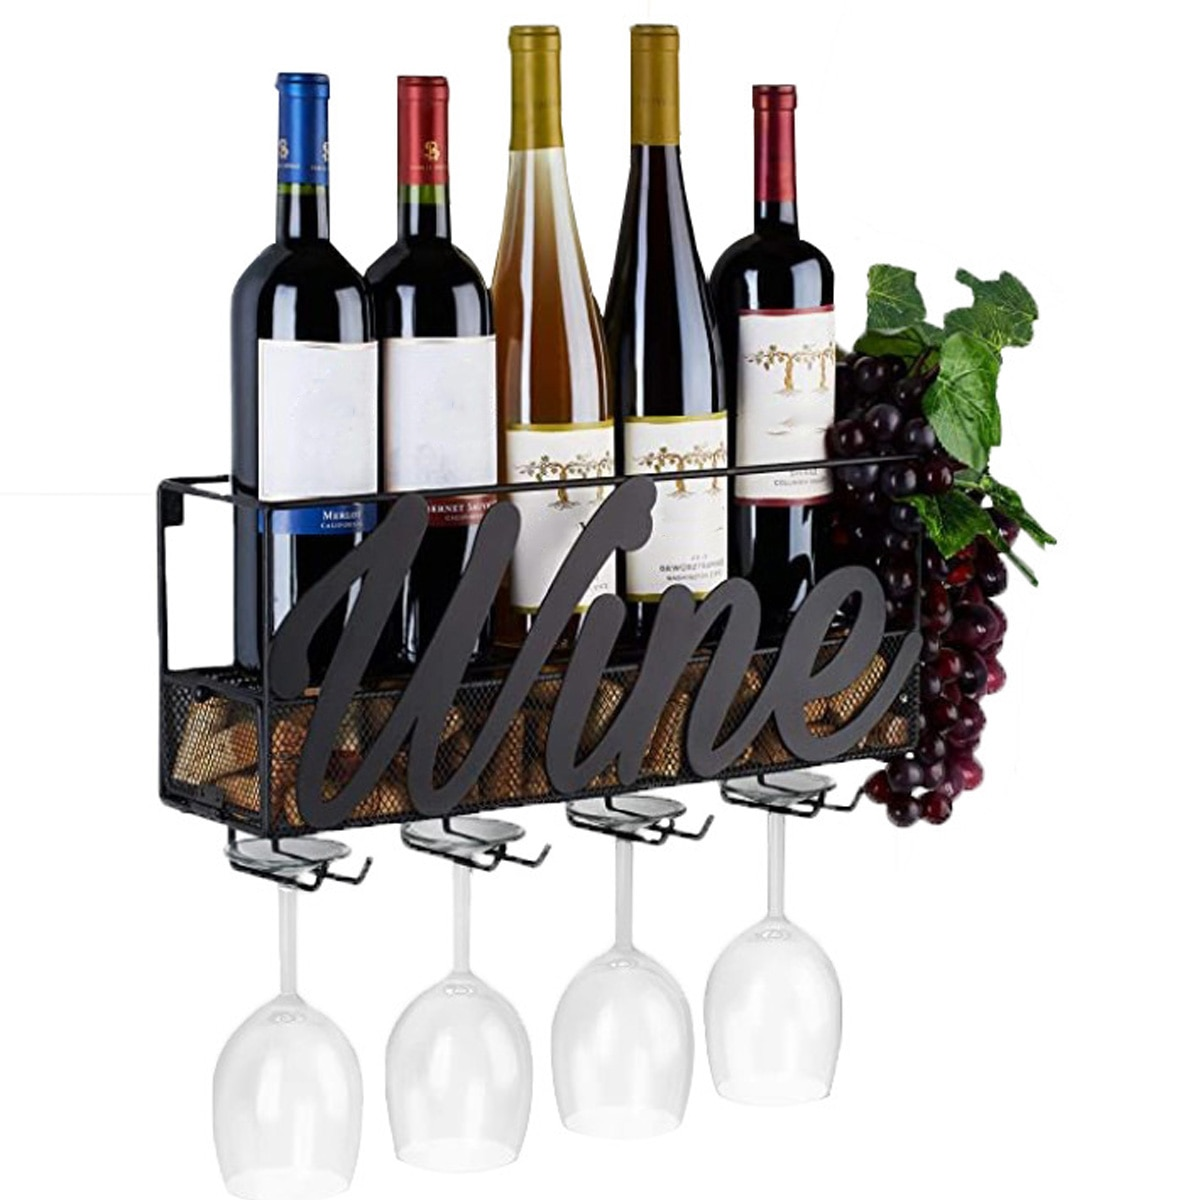 17.71x5.12x8.66 Inch 4 Built-in Wine Glass Holders Metal Wall Mounted Wine Rack Bottle Champagne Shelf With Extra Cork Tray